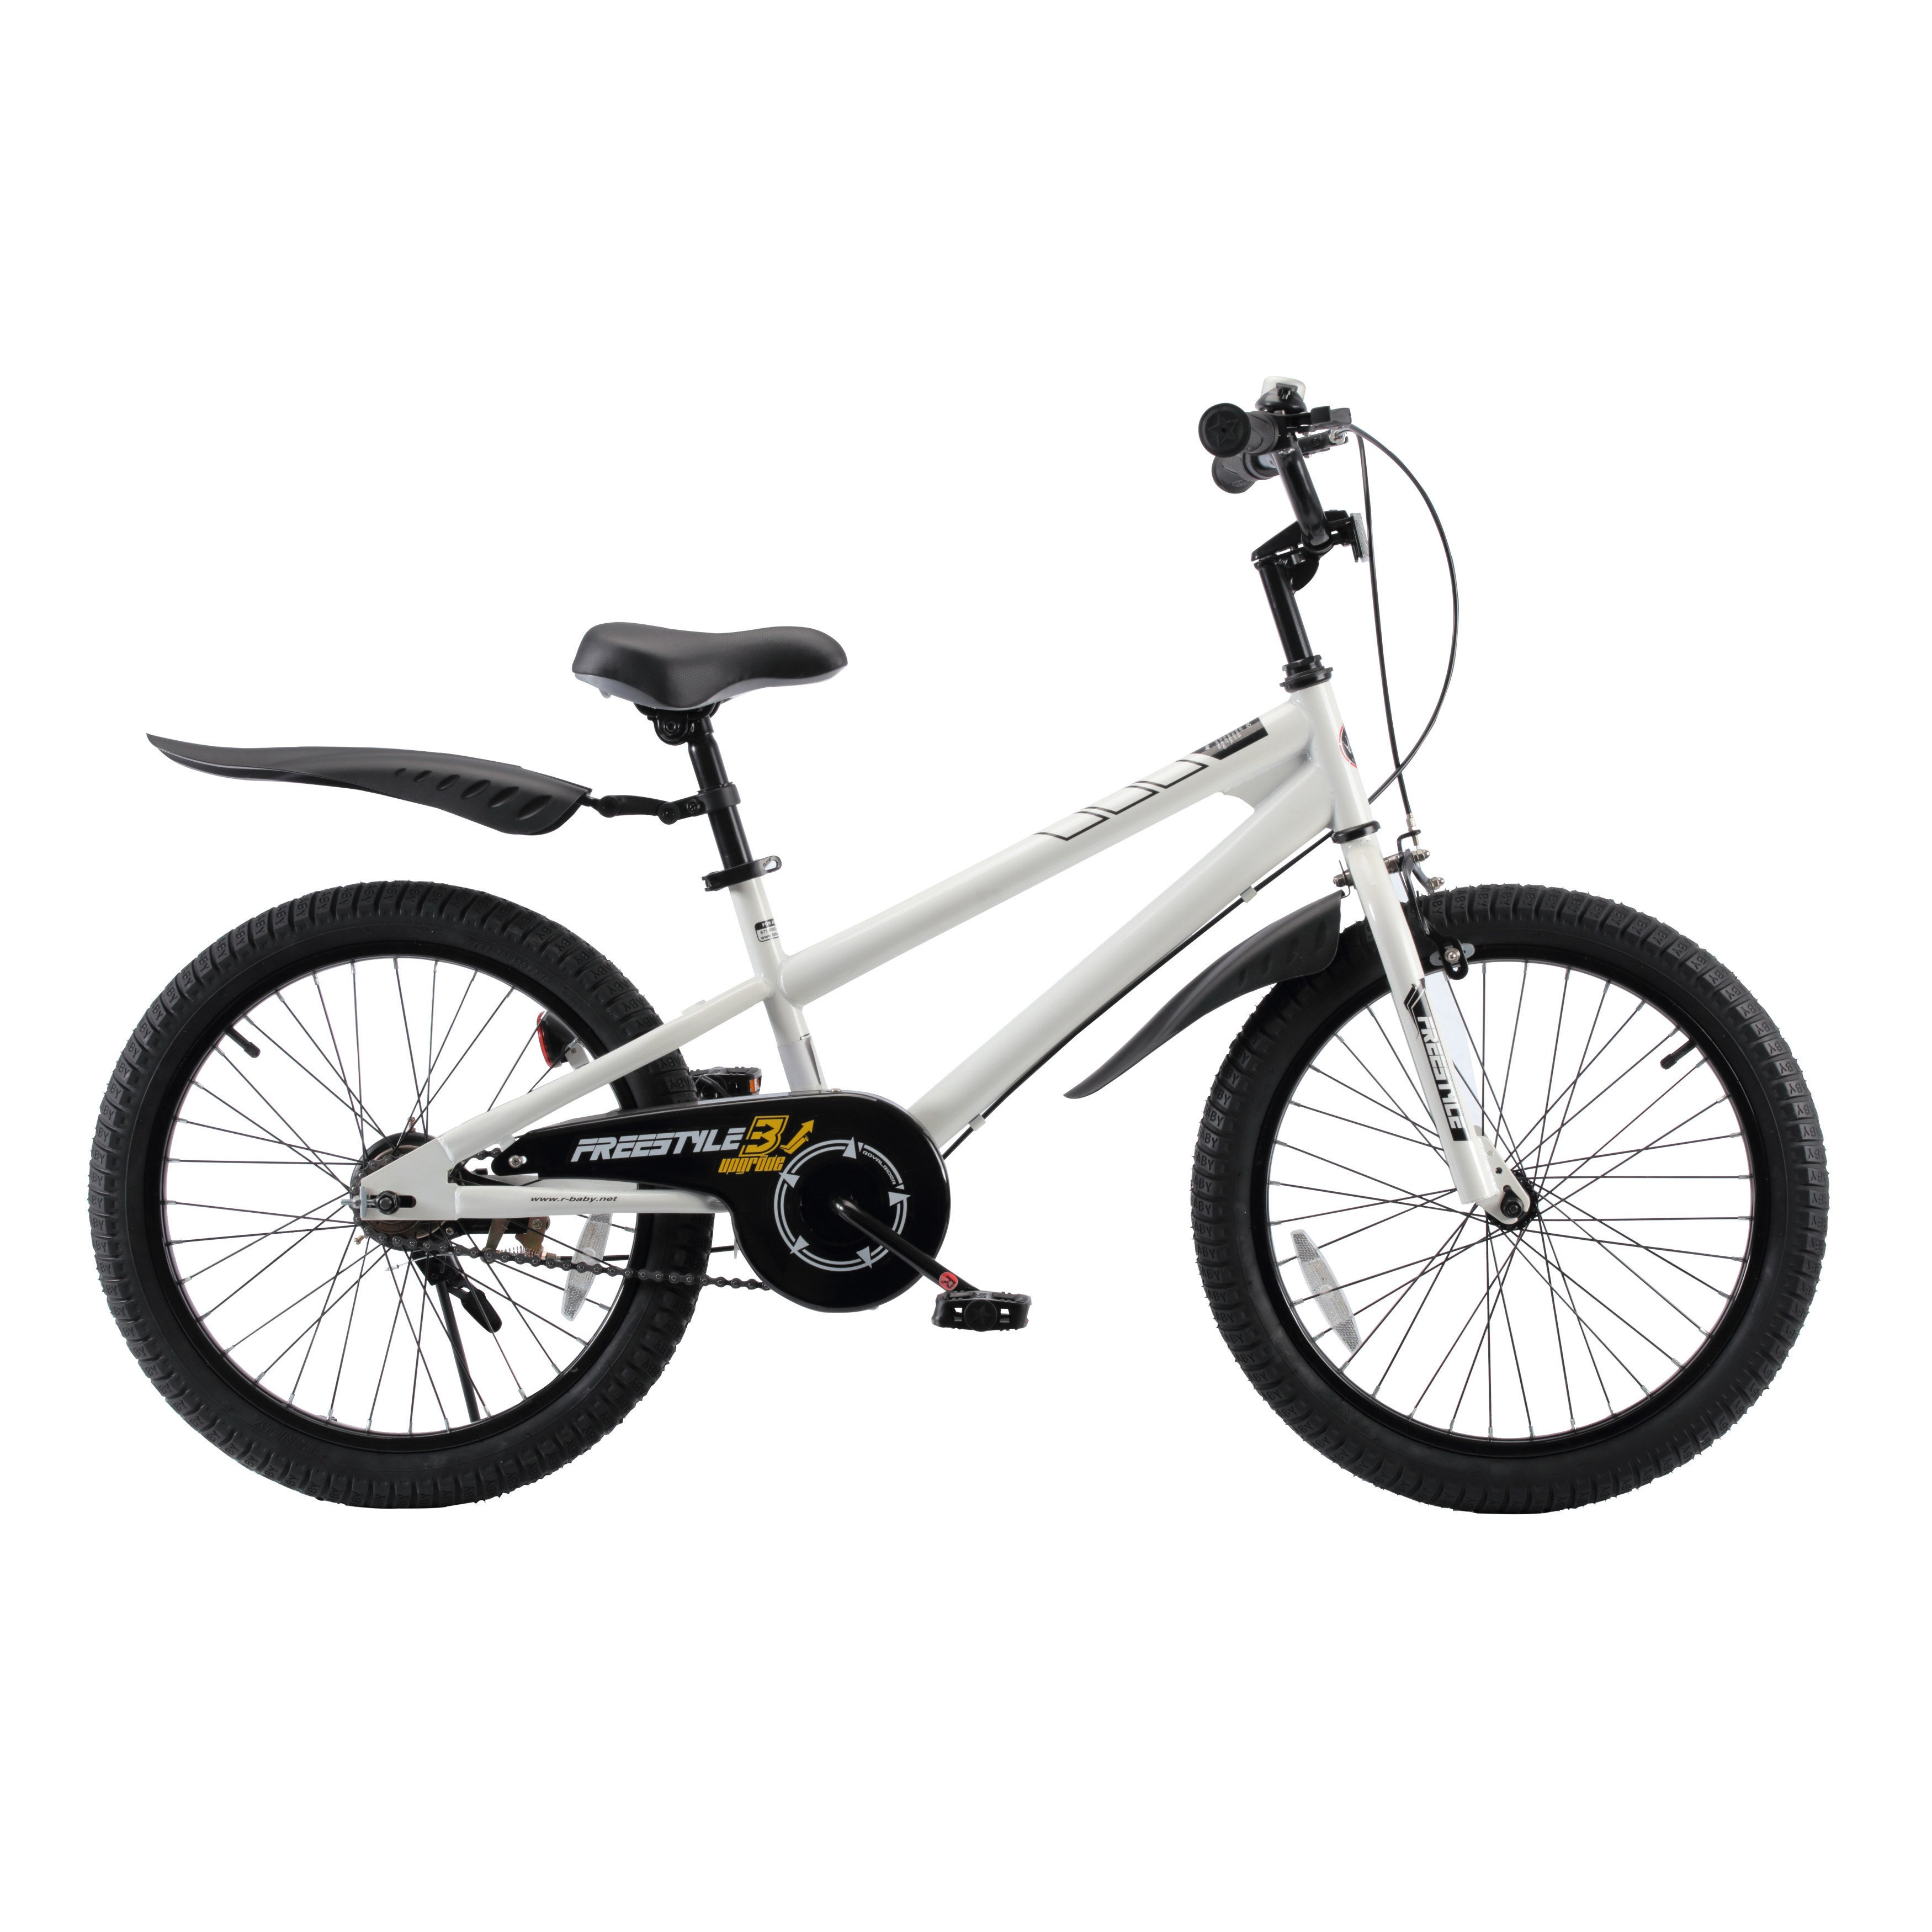 Boys 20 Inch Bike >> Royalbaby Bmx Freestyle Kids Bike Boy S Bikes And Girl S Bikes Gifts For Children 20 Inch Wheels In 6 Colors